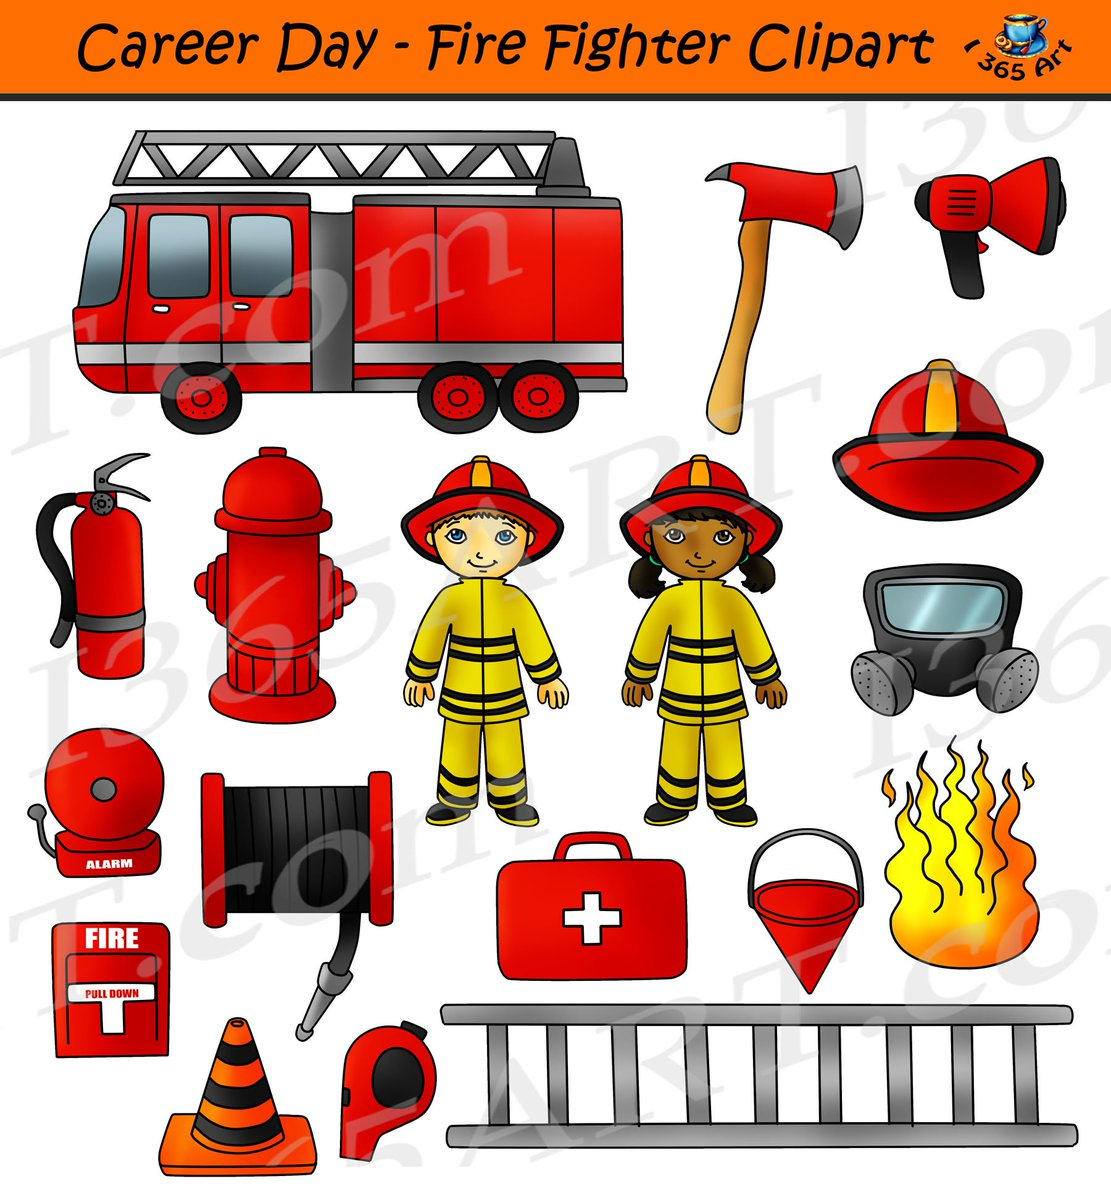 hight resolution of career day fire fighter clipart digital download in color in bw commercial graphics by clipart 4 school http bit ly 2orntwk kids